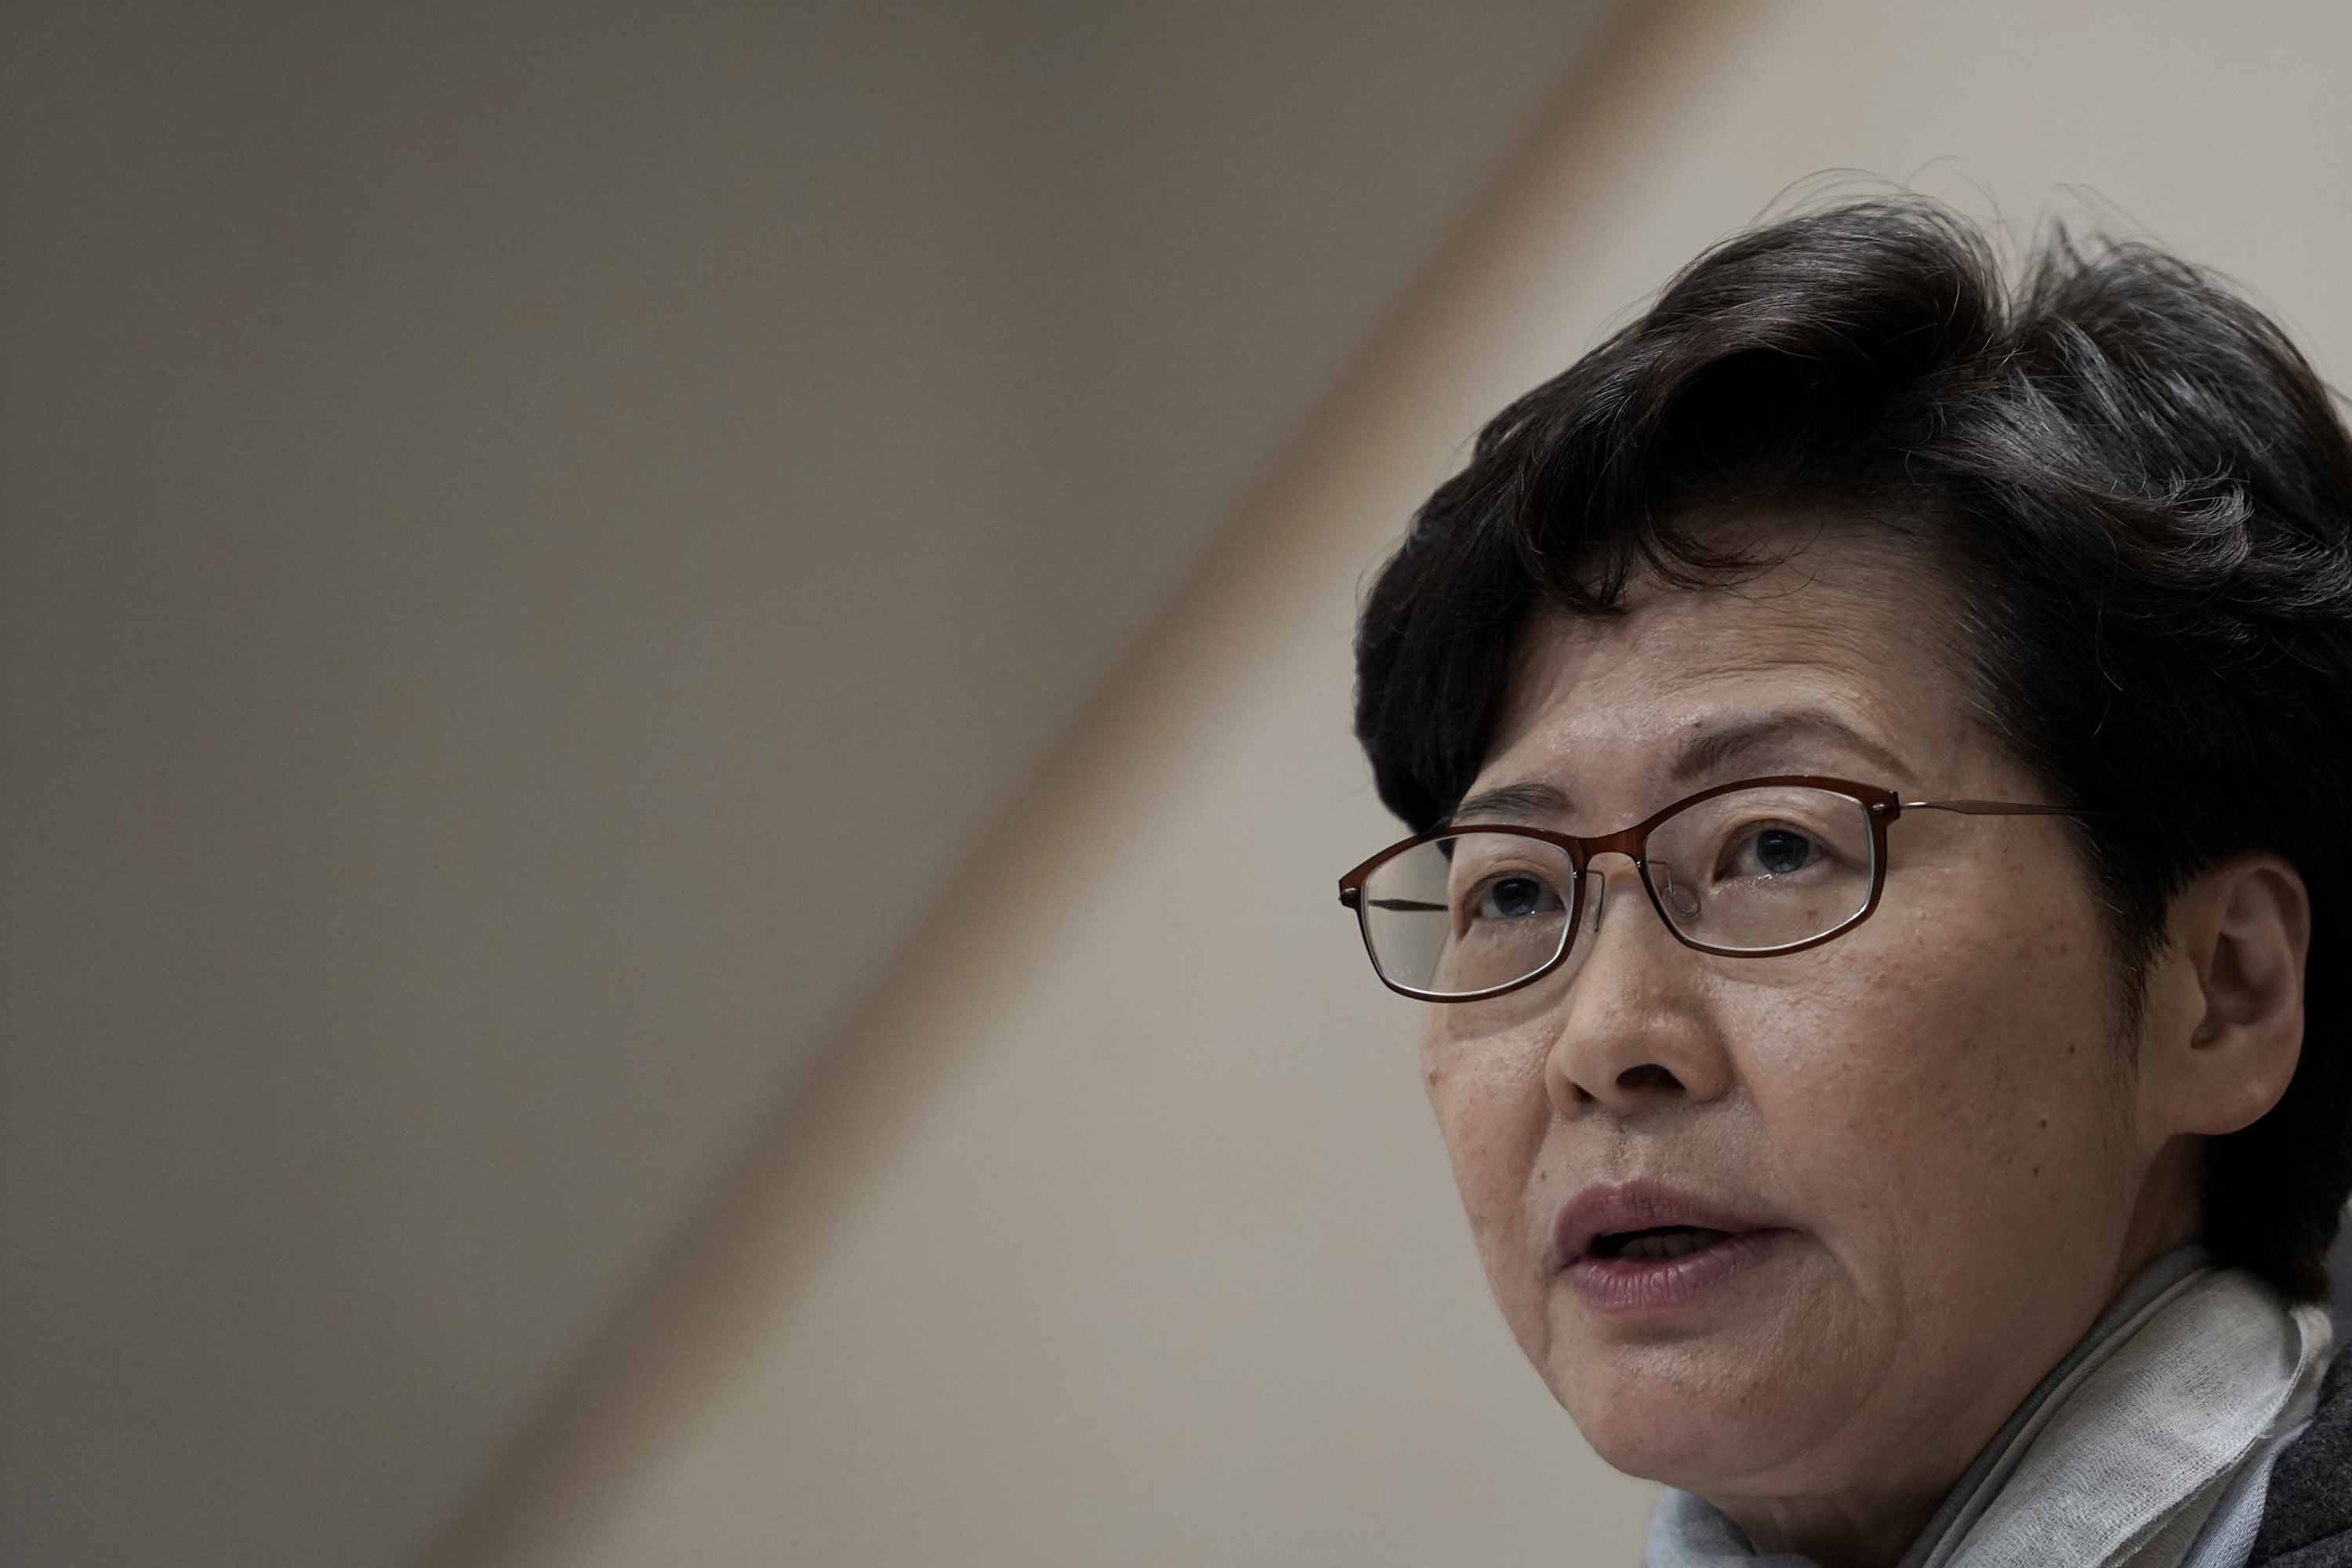 Hong Kong Chief Executive Carrie Lam speaks during a press conference in Hong Kong on February 11.